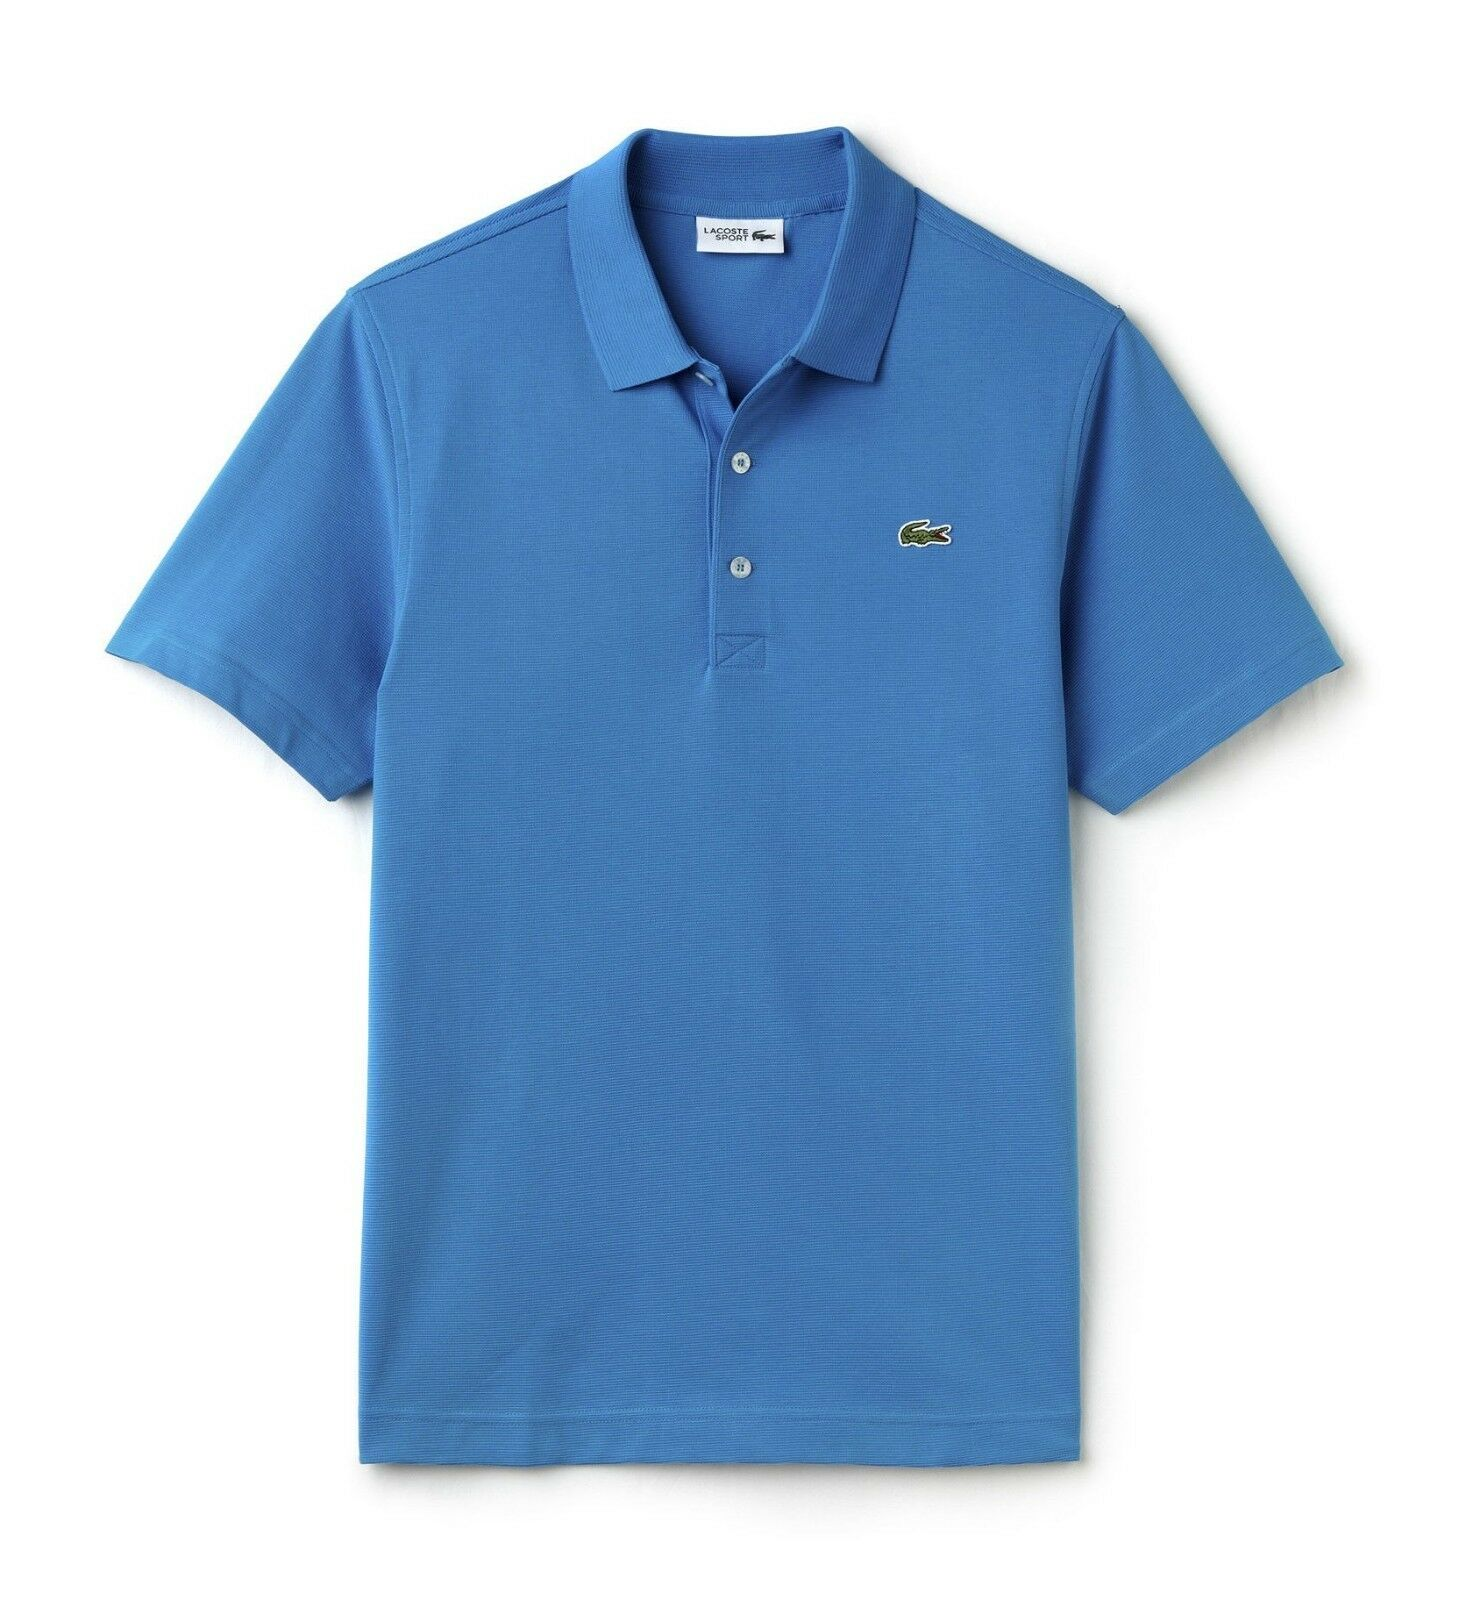 LACOSTE SPORT SLIM FIT POLO SHIRT BNWT - XXL T7 - blueE - YH4801